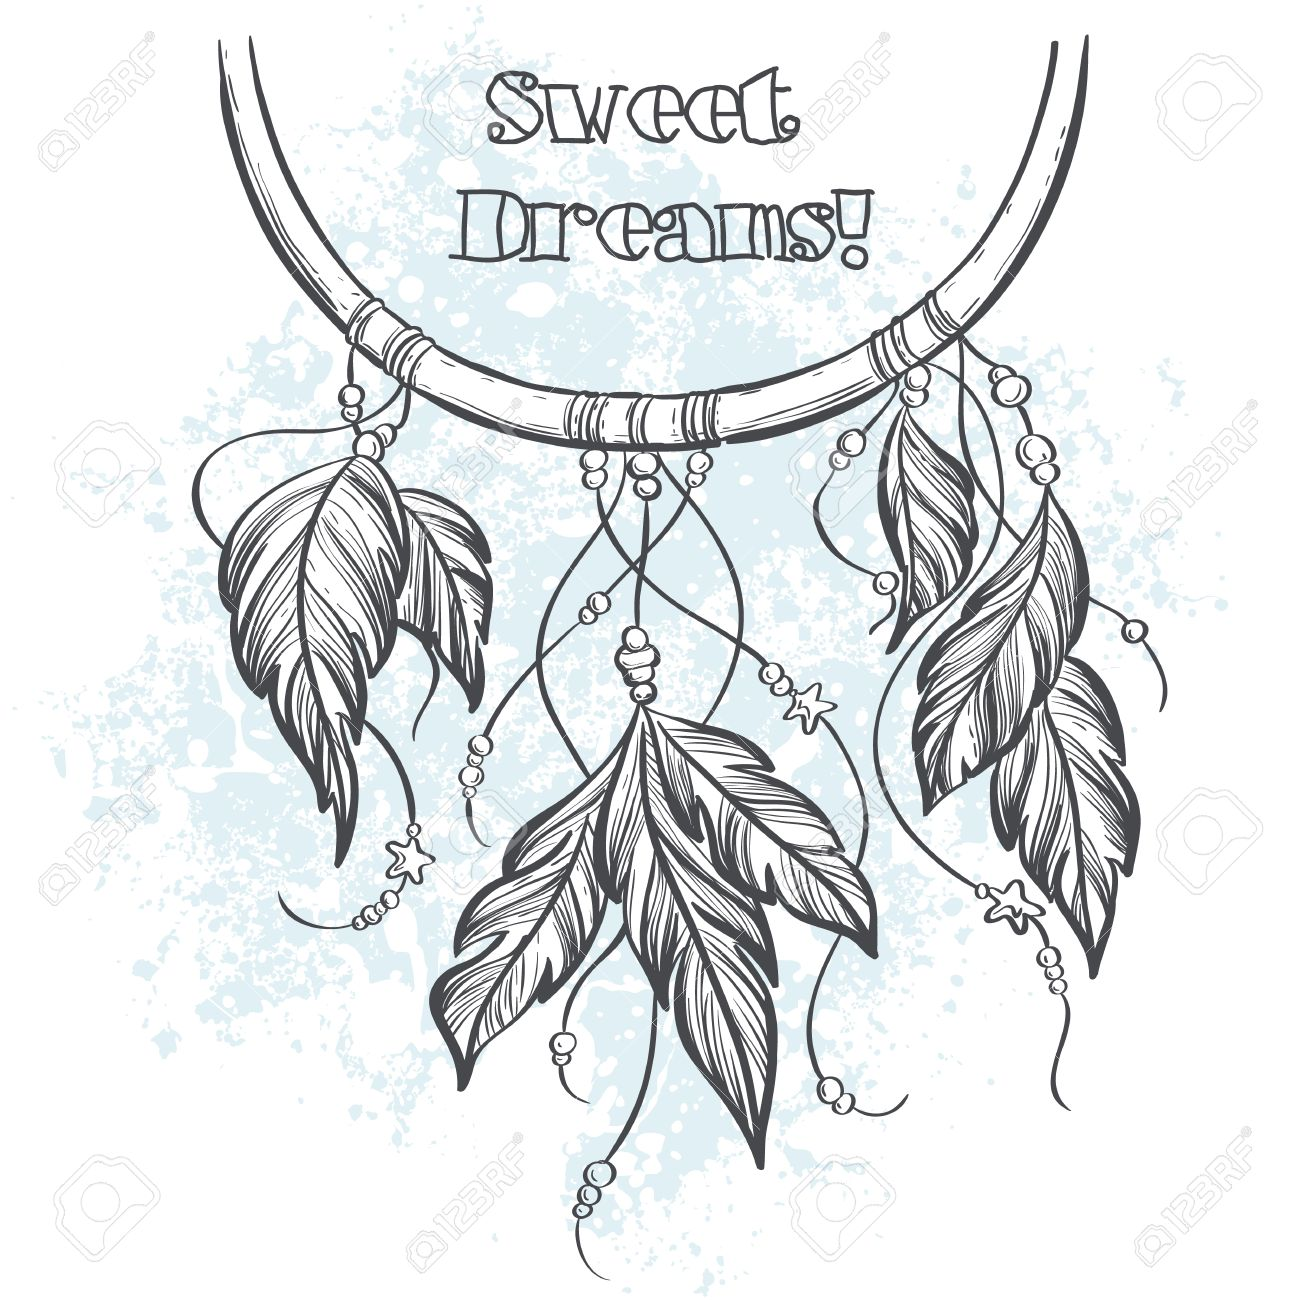 Dream catcher outline vector illustration with feathers - 46811814